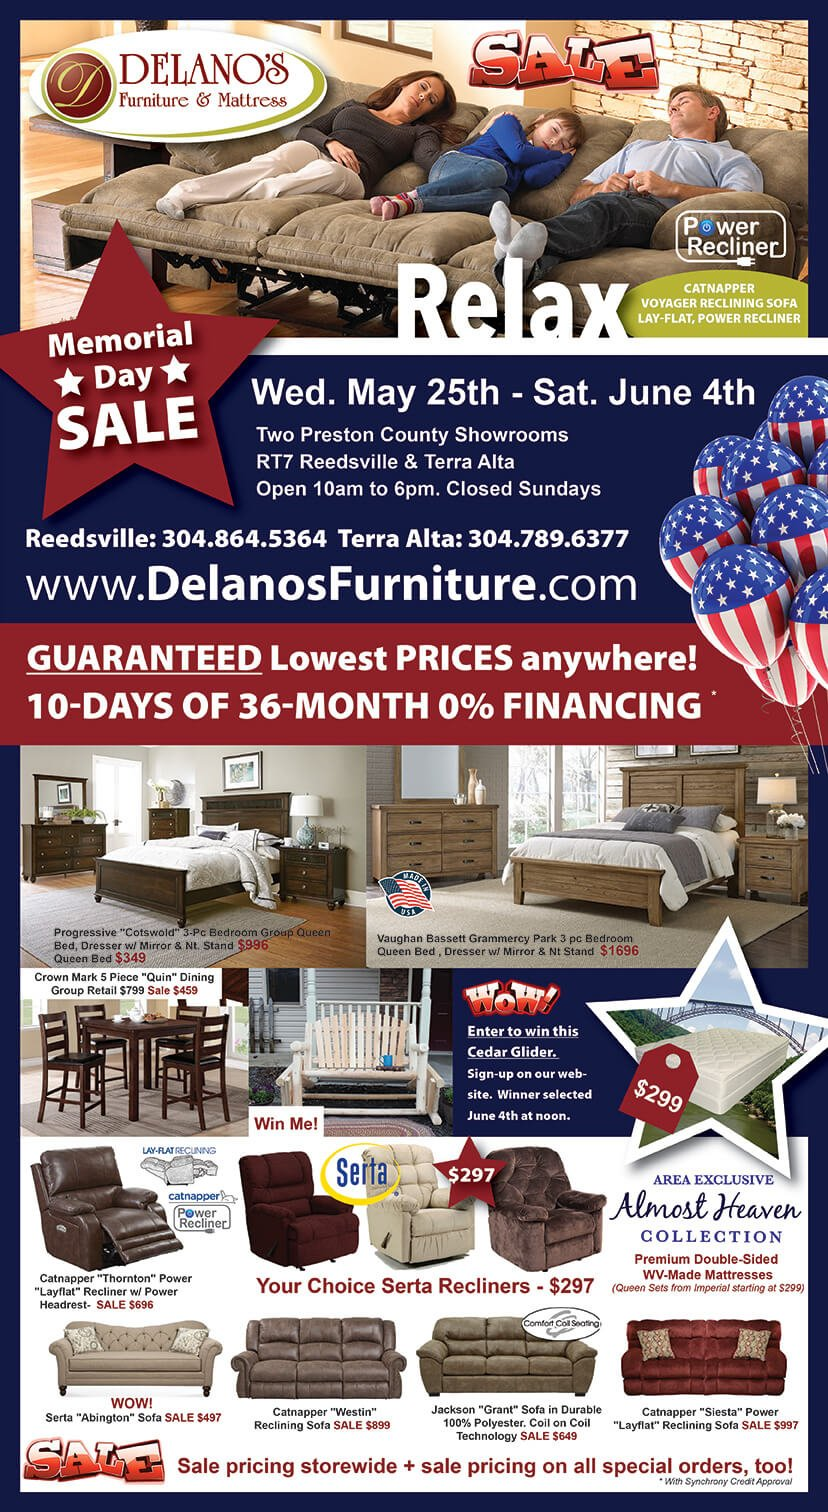 Memorial Day Furniture Sale